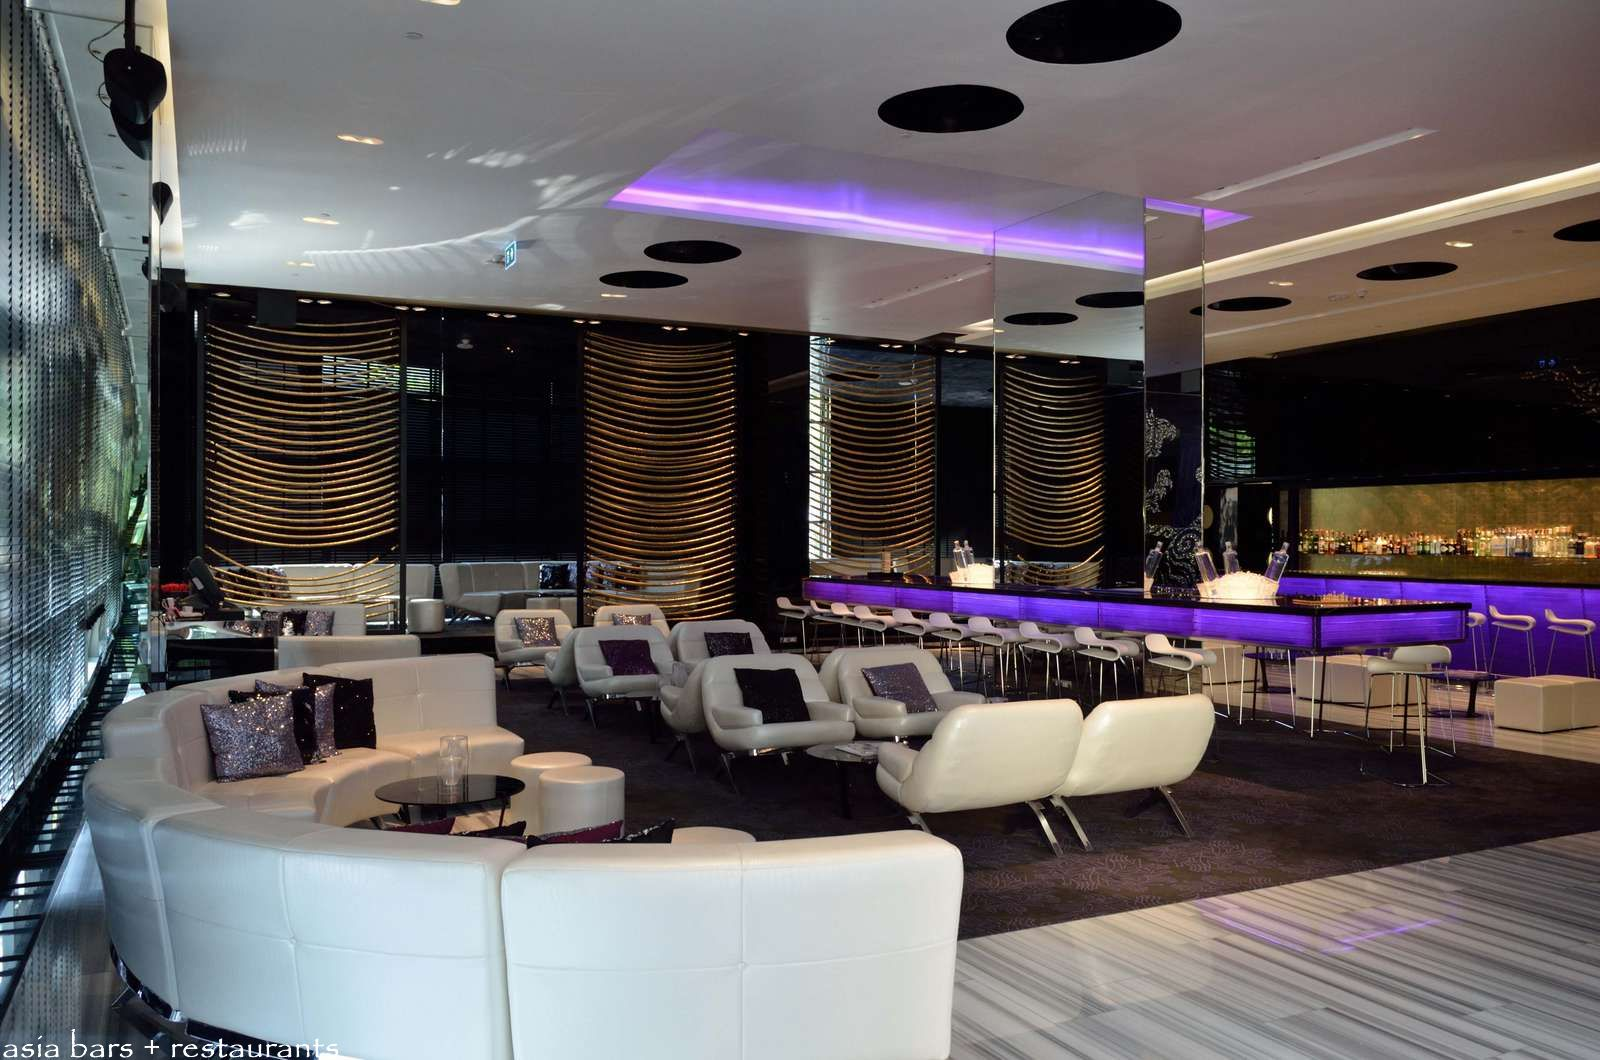 Woobar bar lounge at w bangkok asia bars restaurants for Modern lounge designs